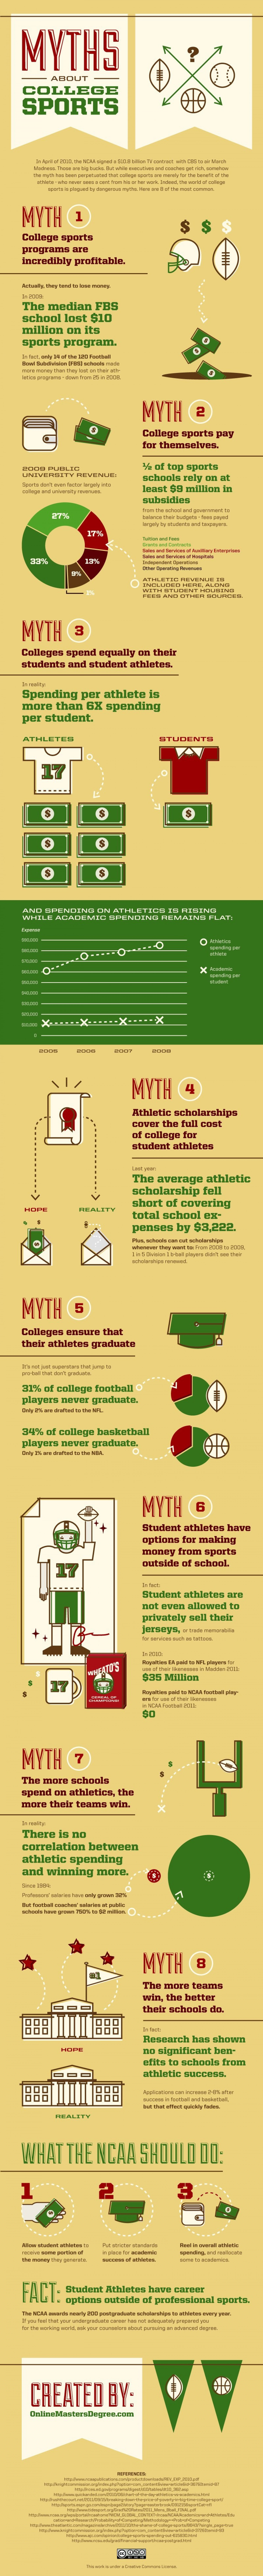 Myths About College Sports Infographic